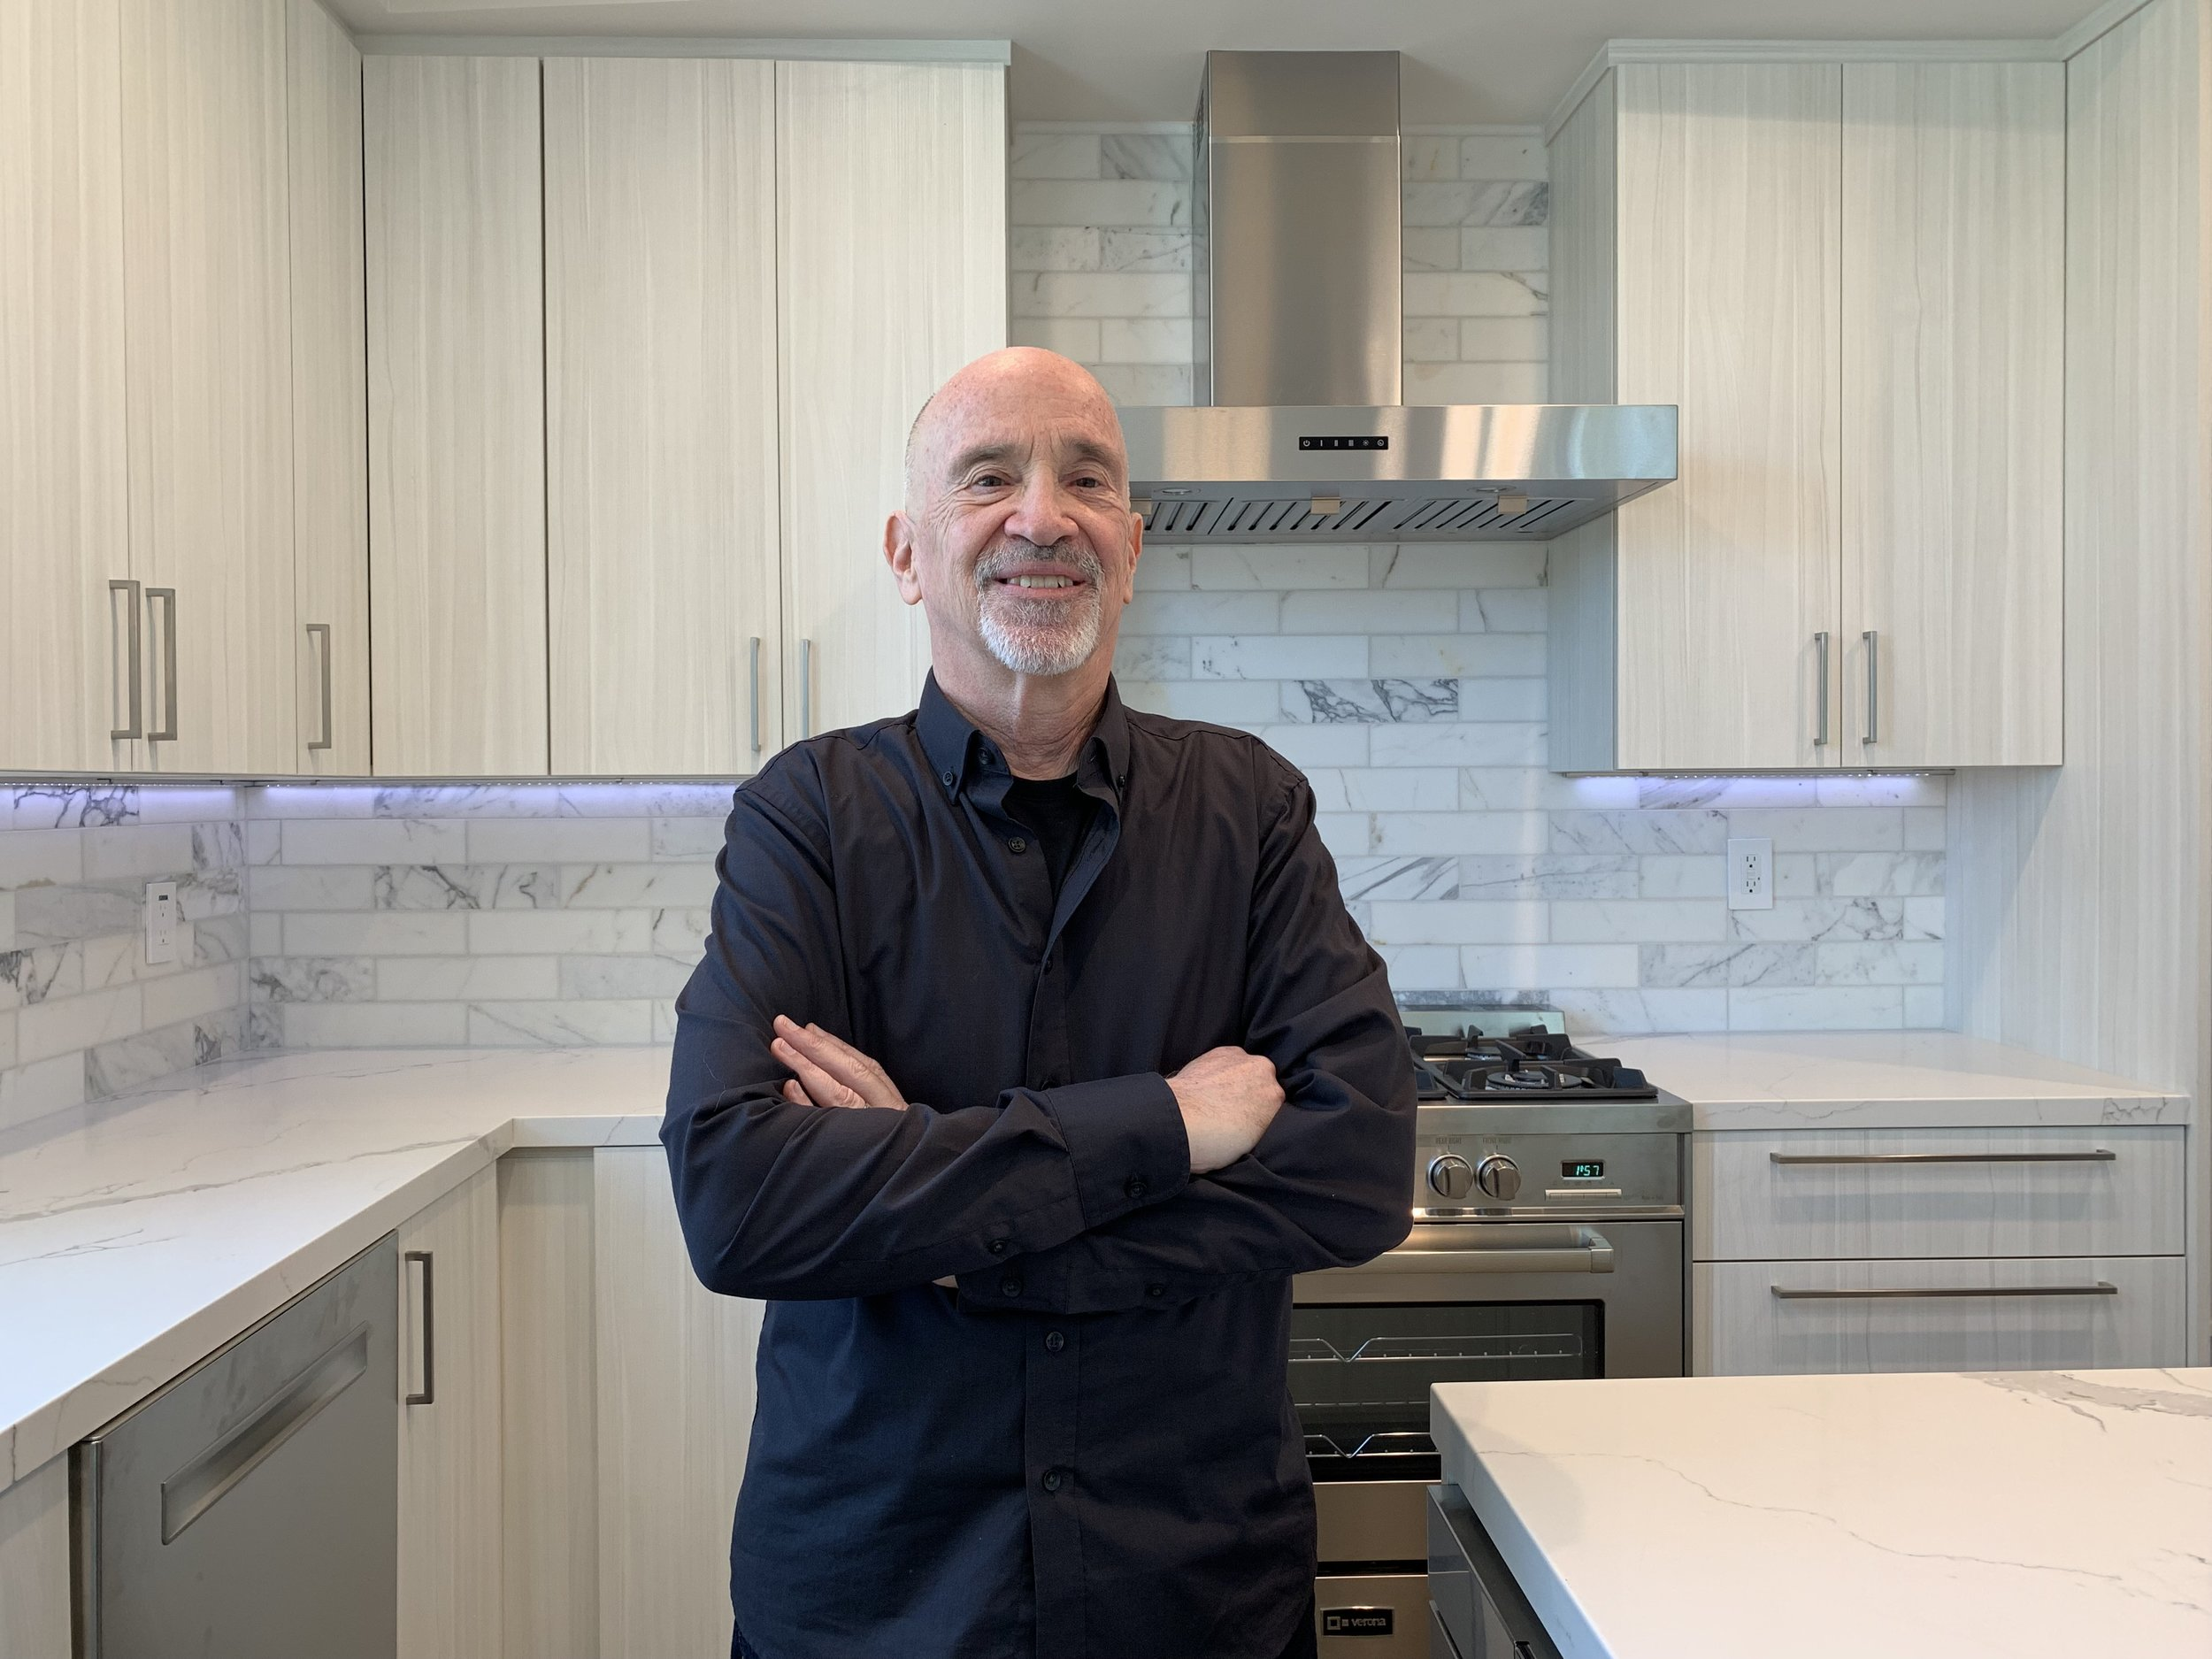 Ellis Posner Rock kitchen.jpg